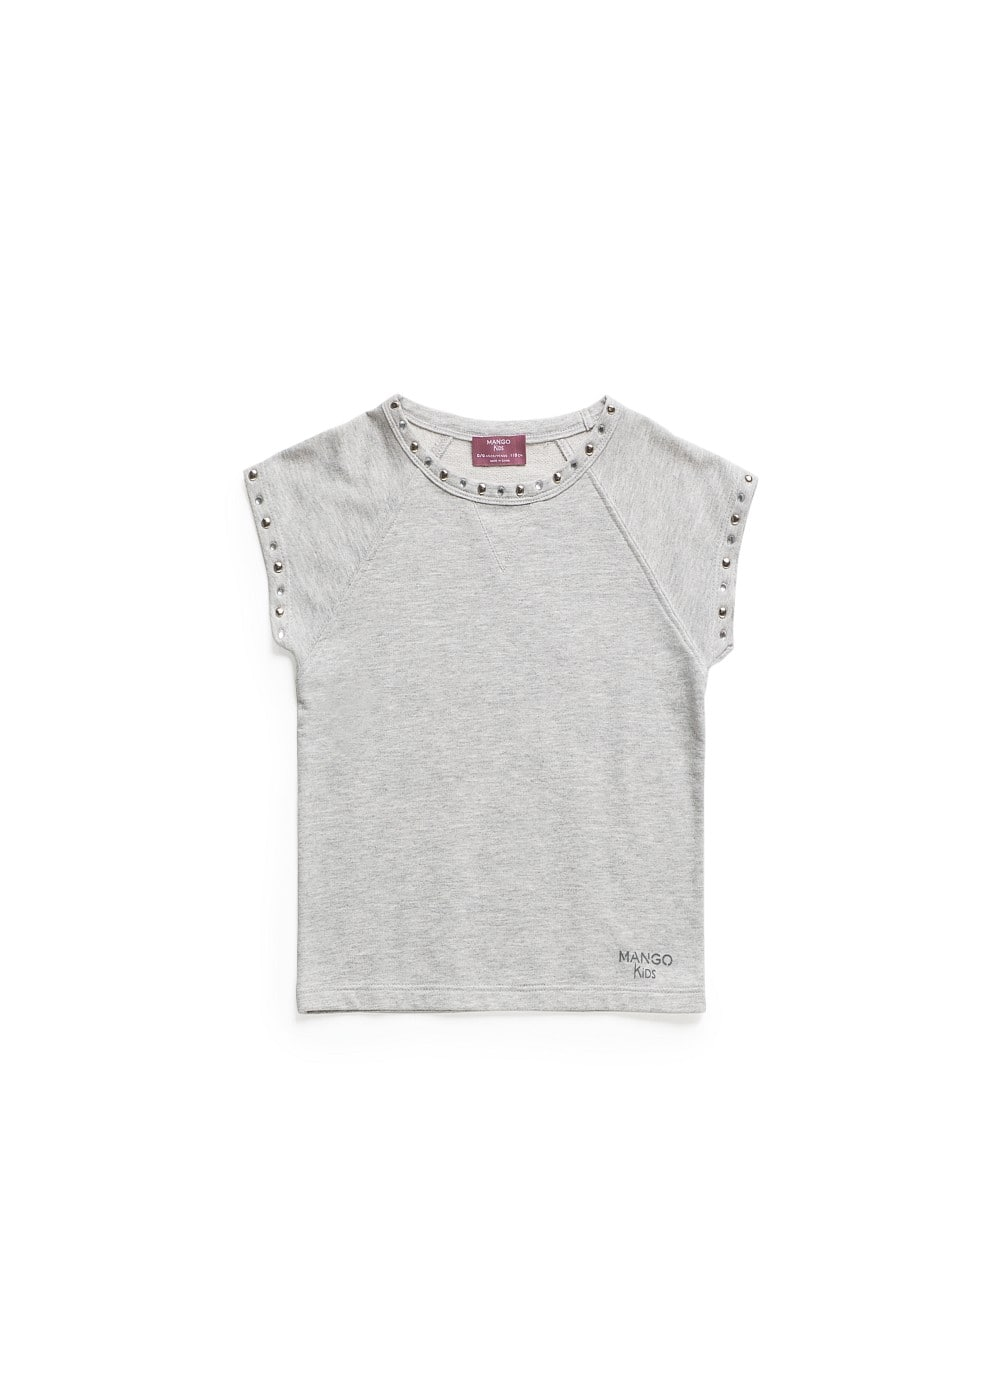 Studded flecked t-shirt | MANGO KIDS